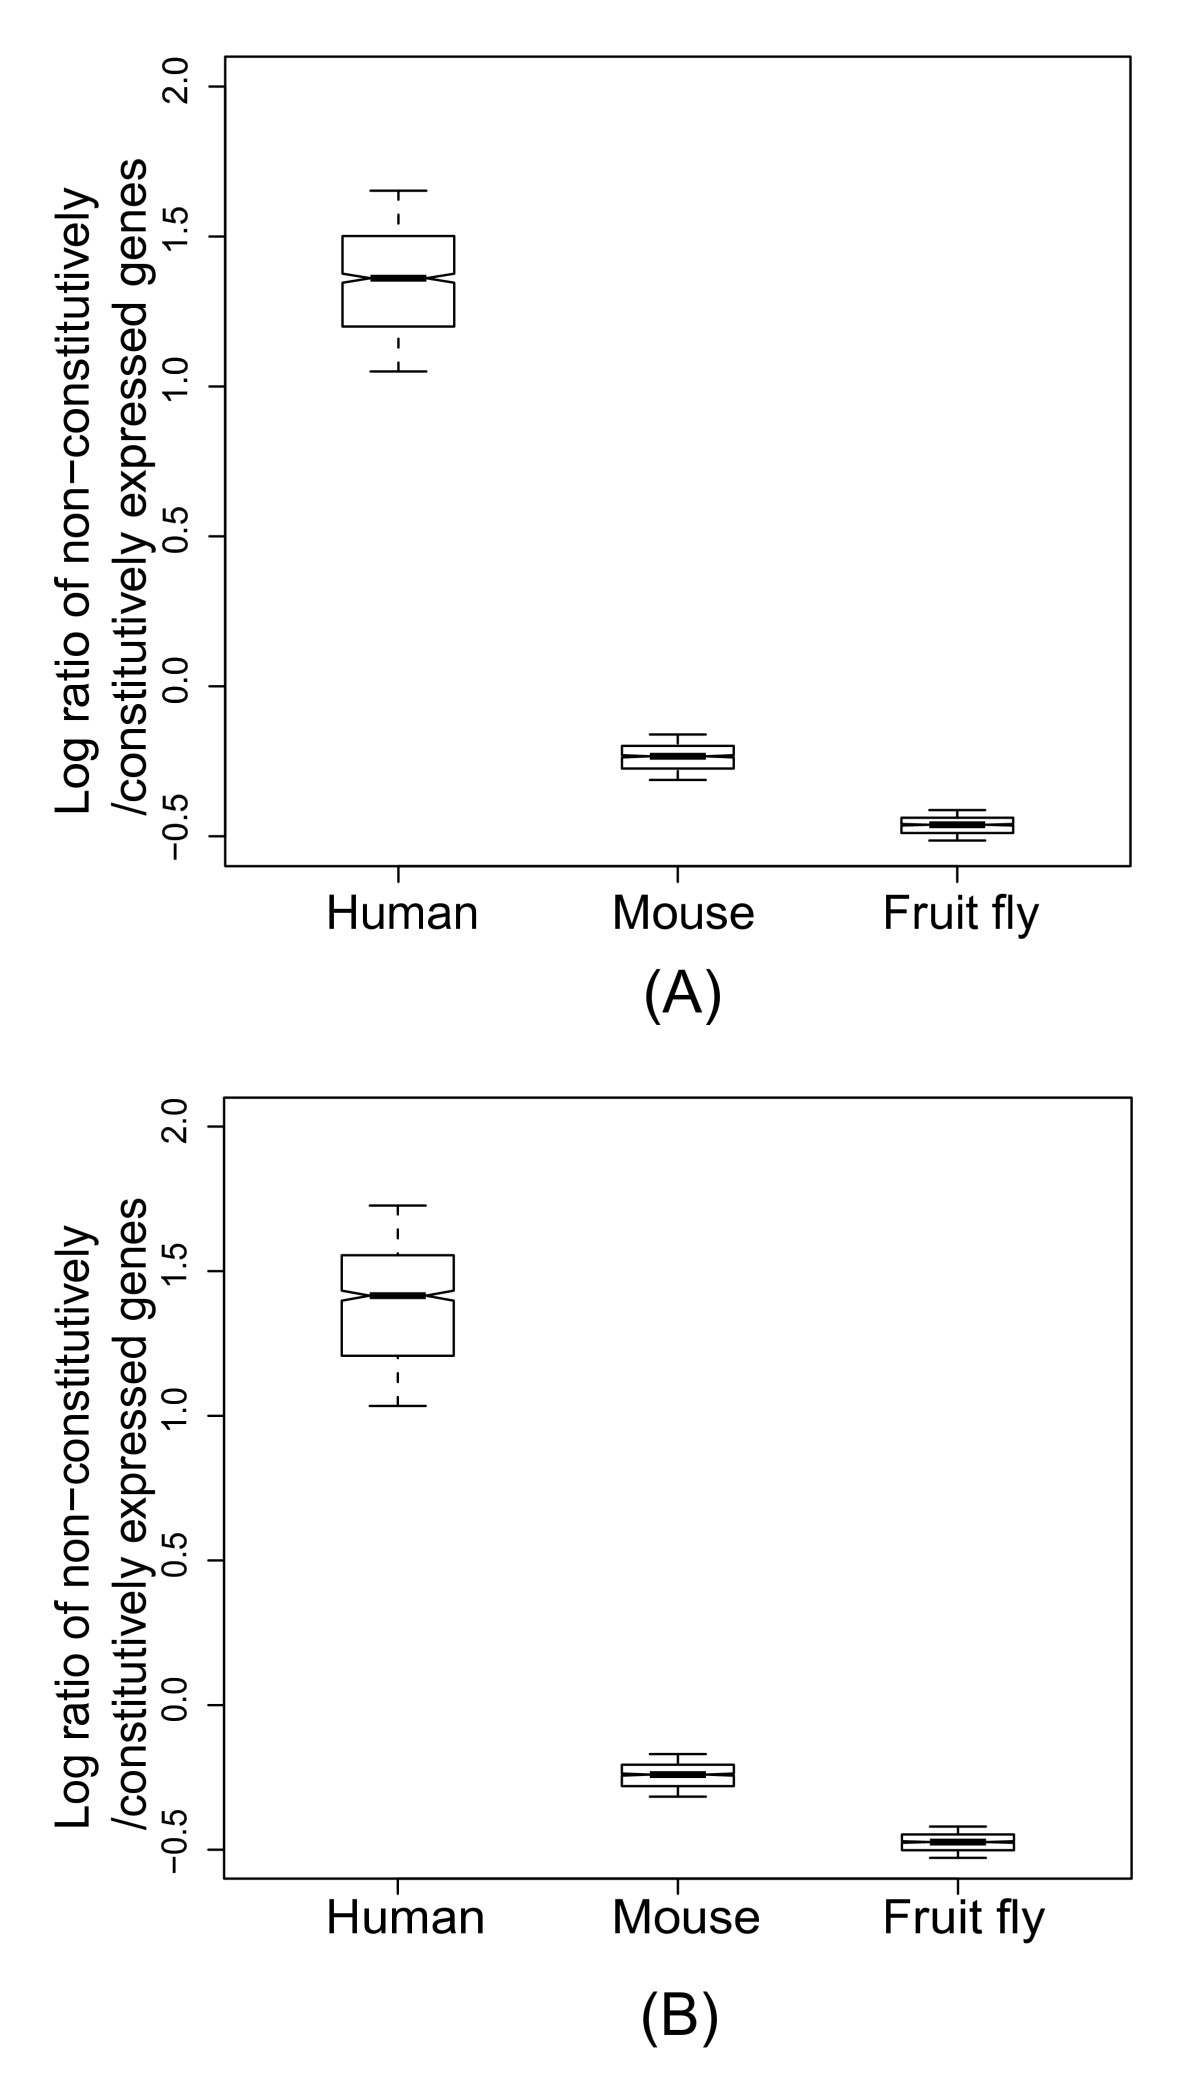 https://static-content.springer.com/image/art%3A10.1186%2F1756-0500-4-312/MediaObjects/13104_2011_Article_1063_Fig4_HTML.jpg